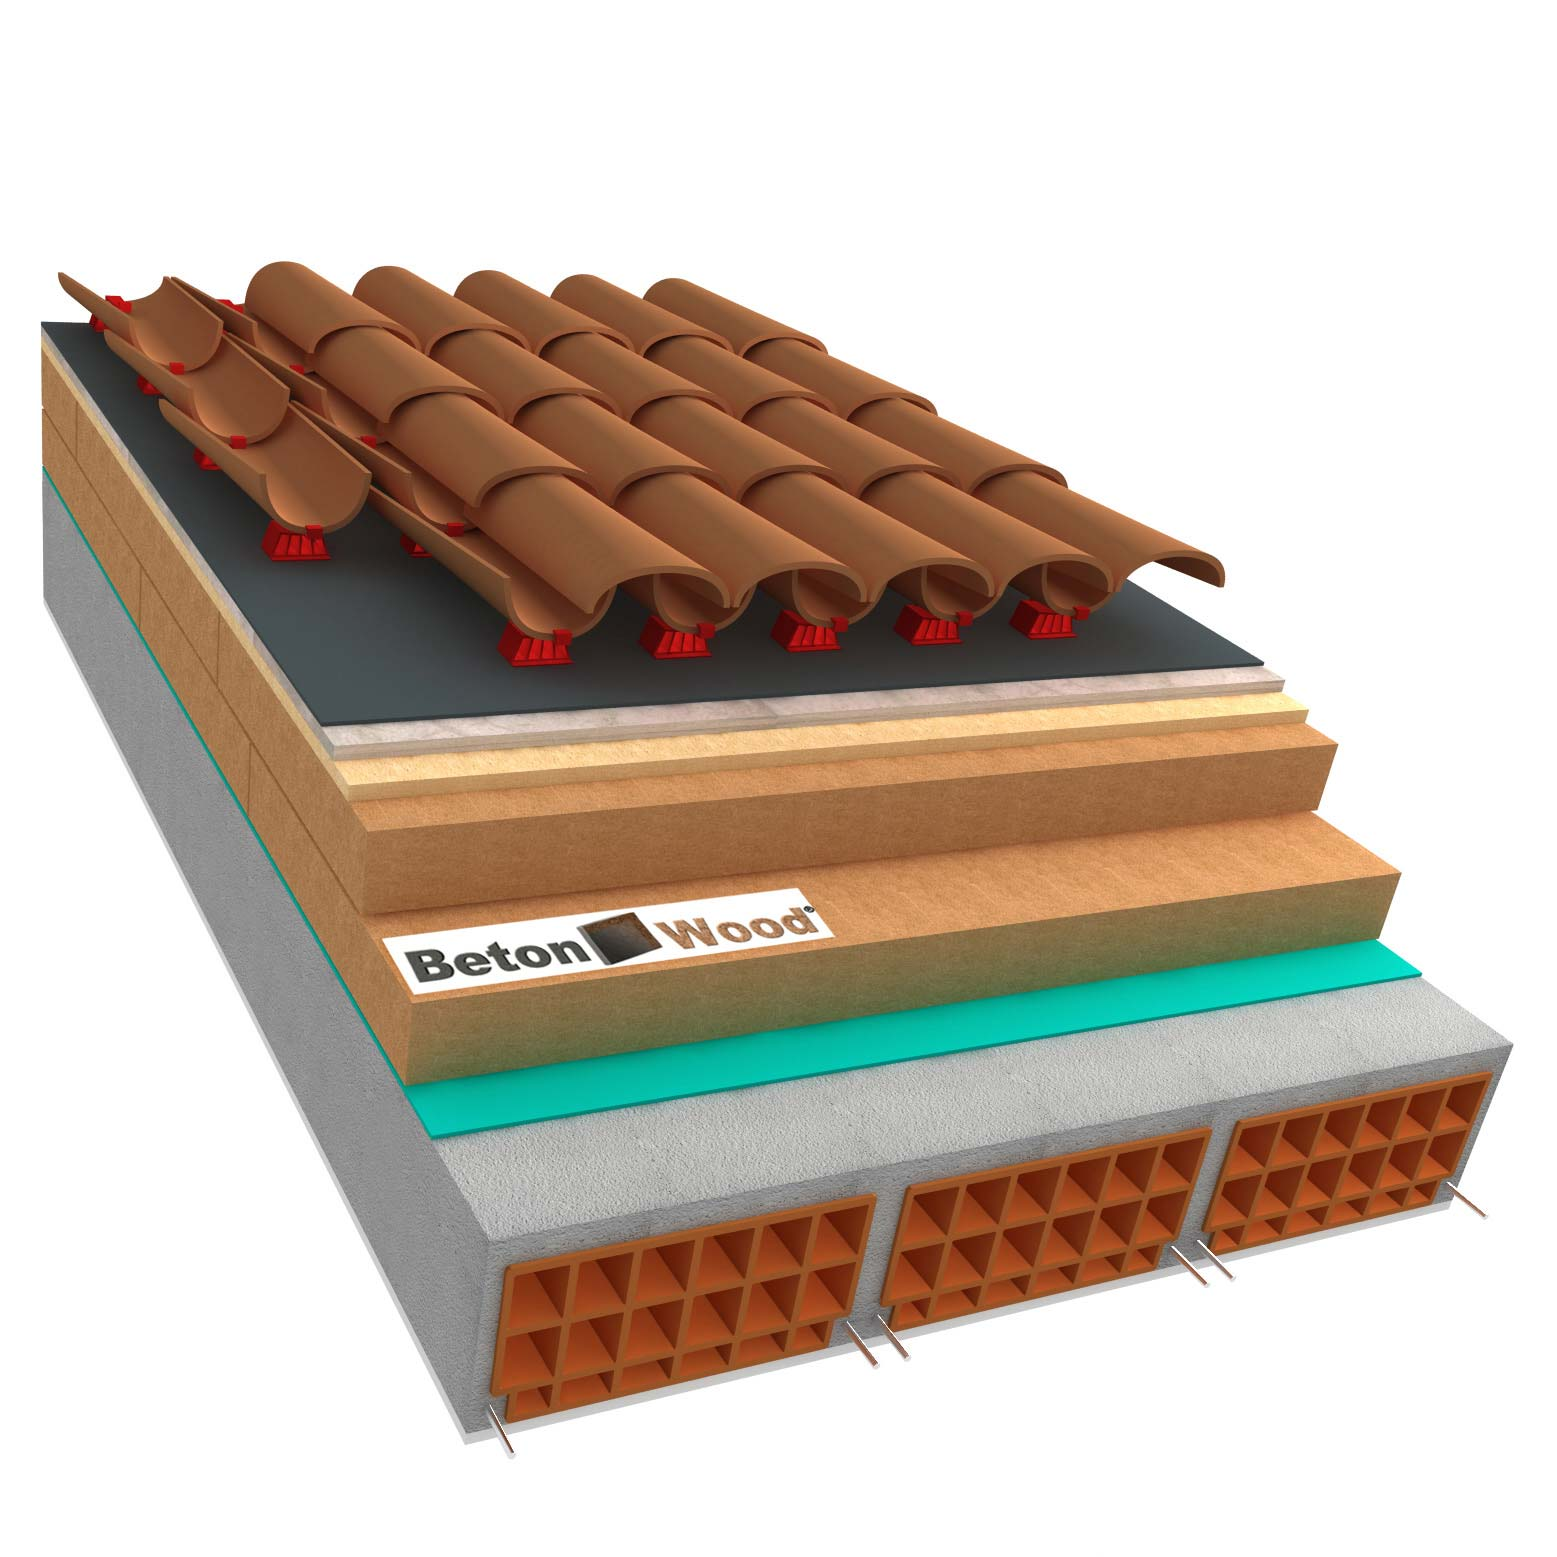 Ventilated roof with wood fiber Isorel, Therm and cement bonded particle boards on concrete